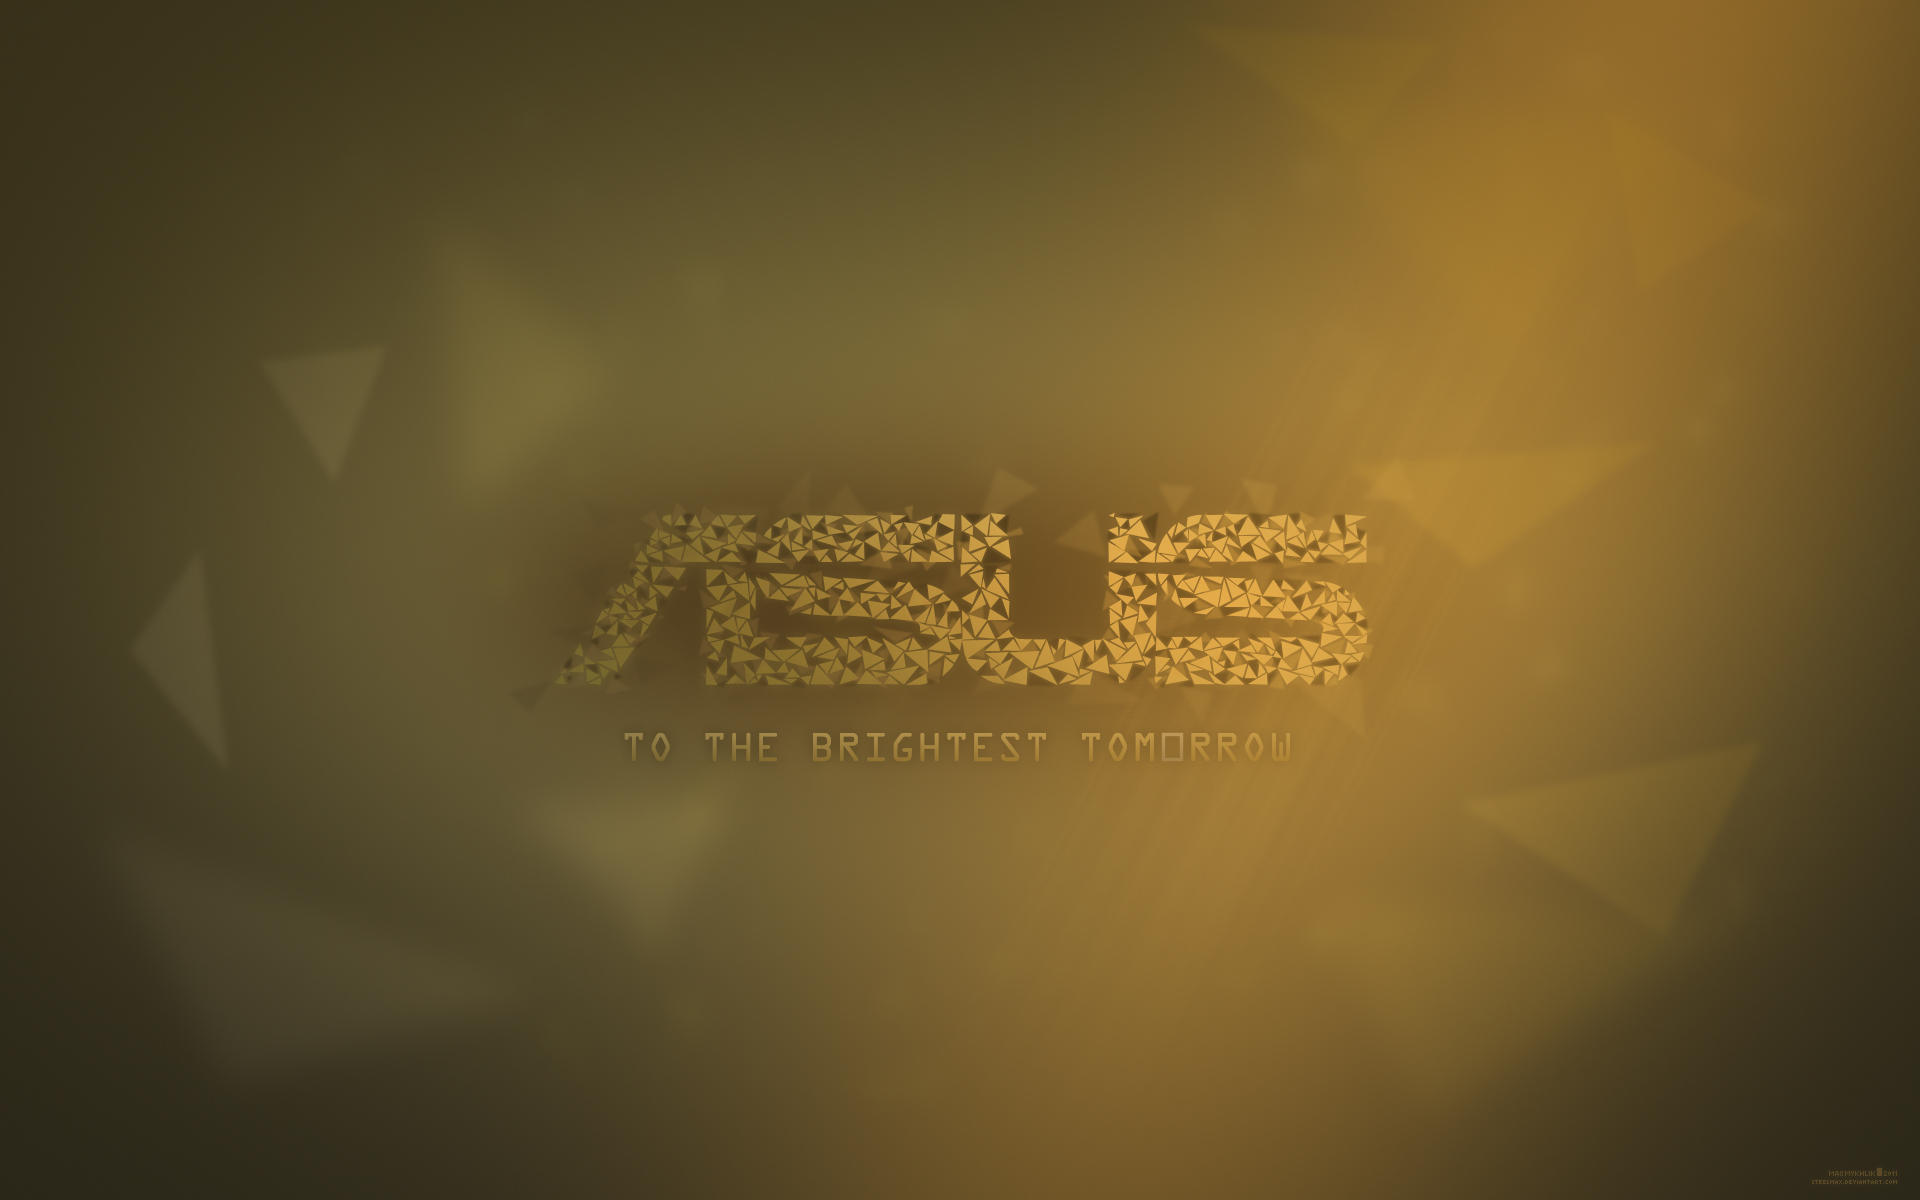 Asus to the brightest tomorrow wallpaper by steelmax on deviantart - Wallpaper images ...